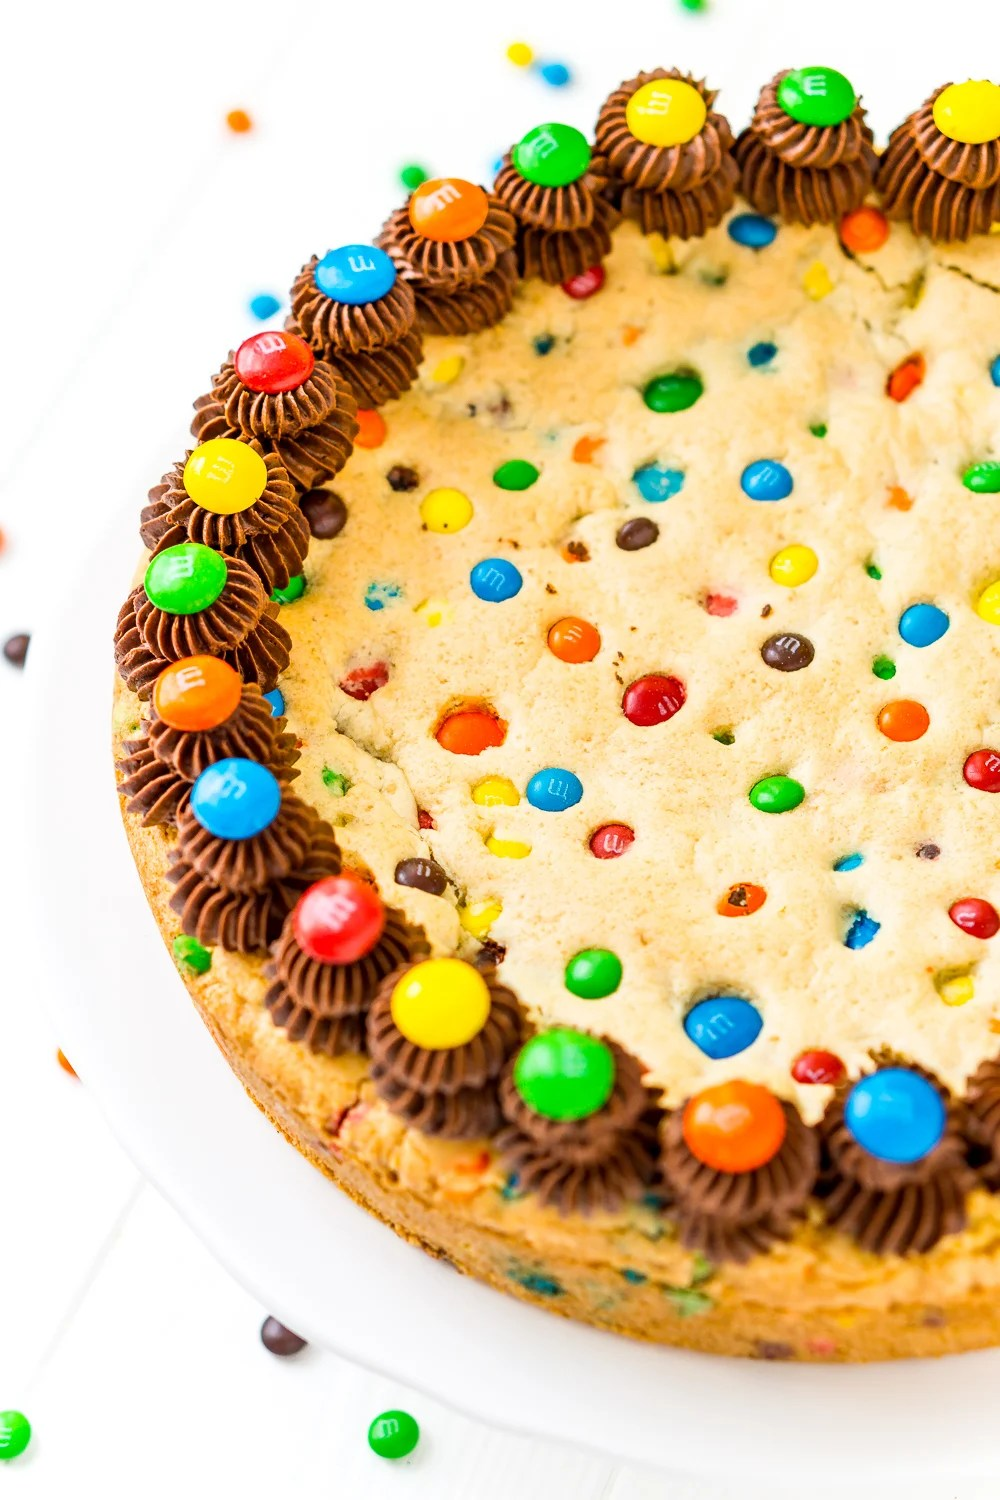 Close up of whole Cookie Cake with M&M's and chocolate frosting.